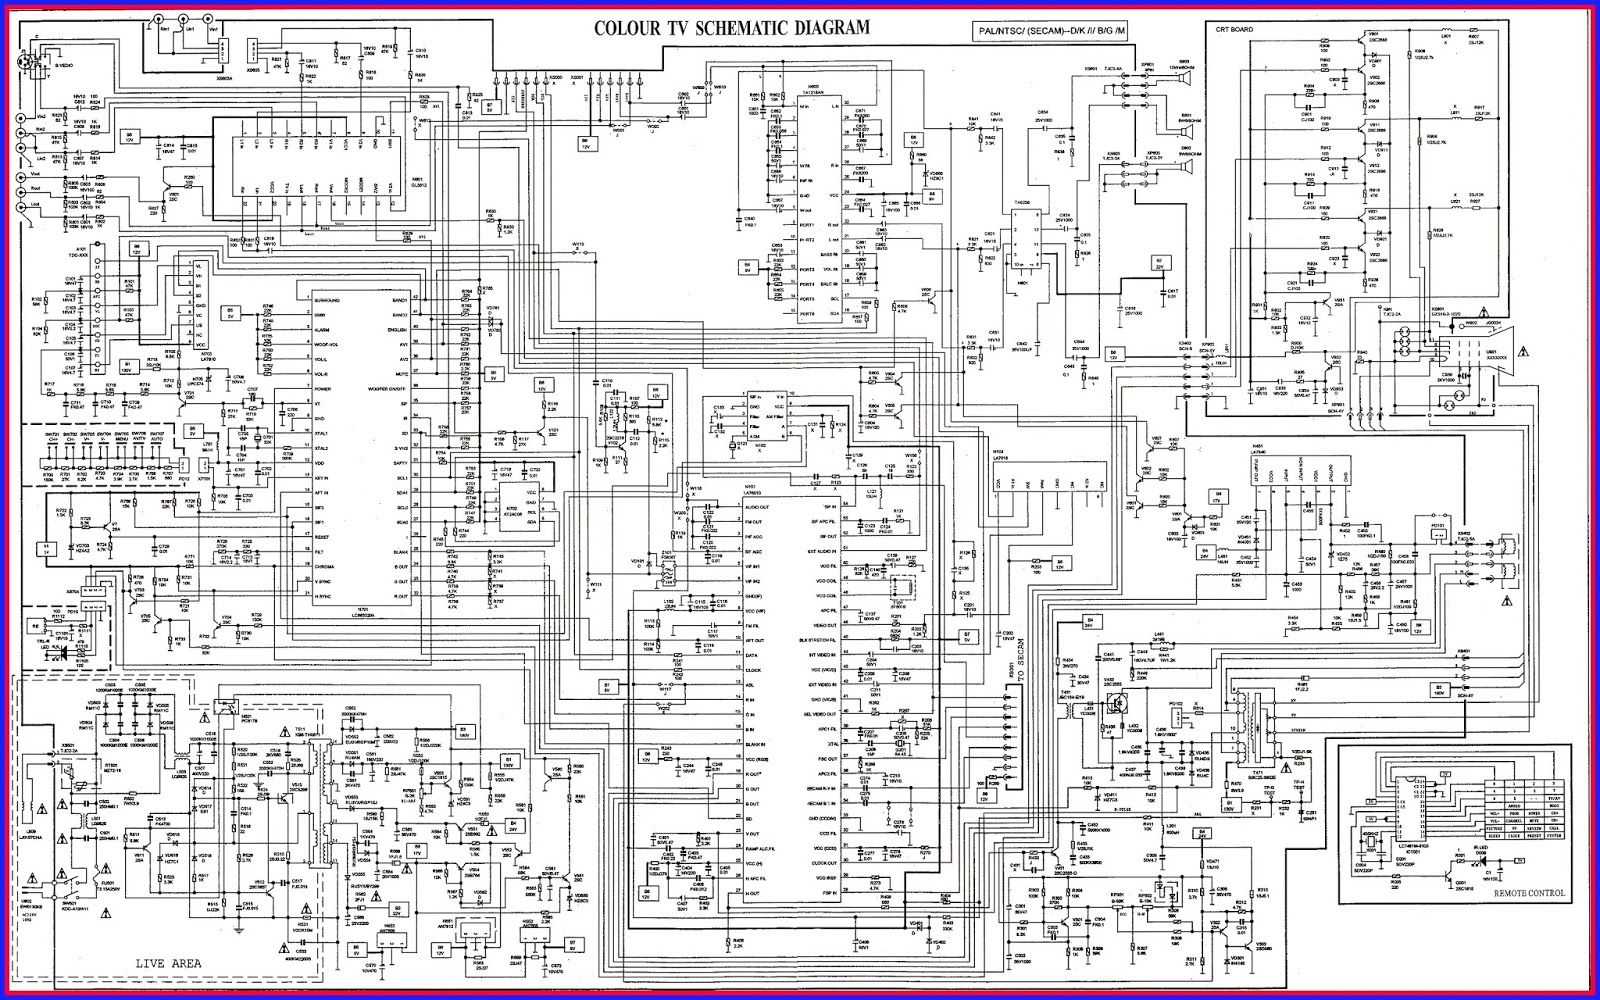 medium resolution of lg tv connection diagram schema diagram preview lg tv connection diagram